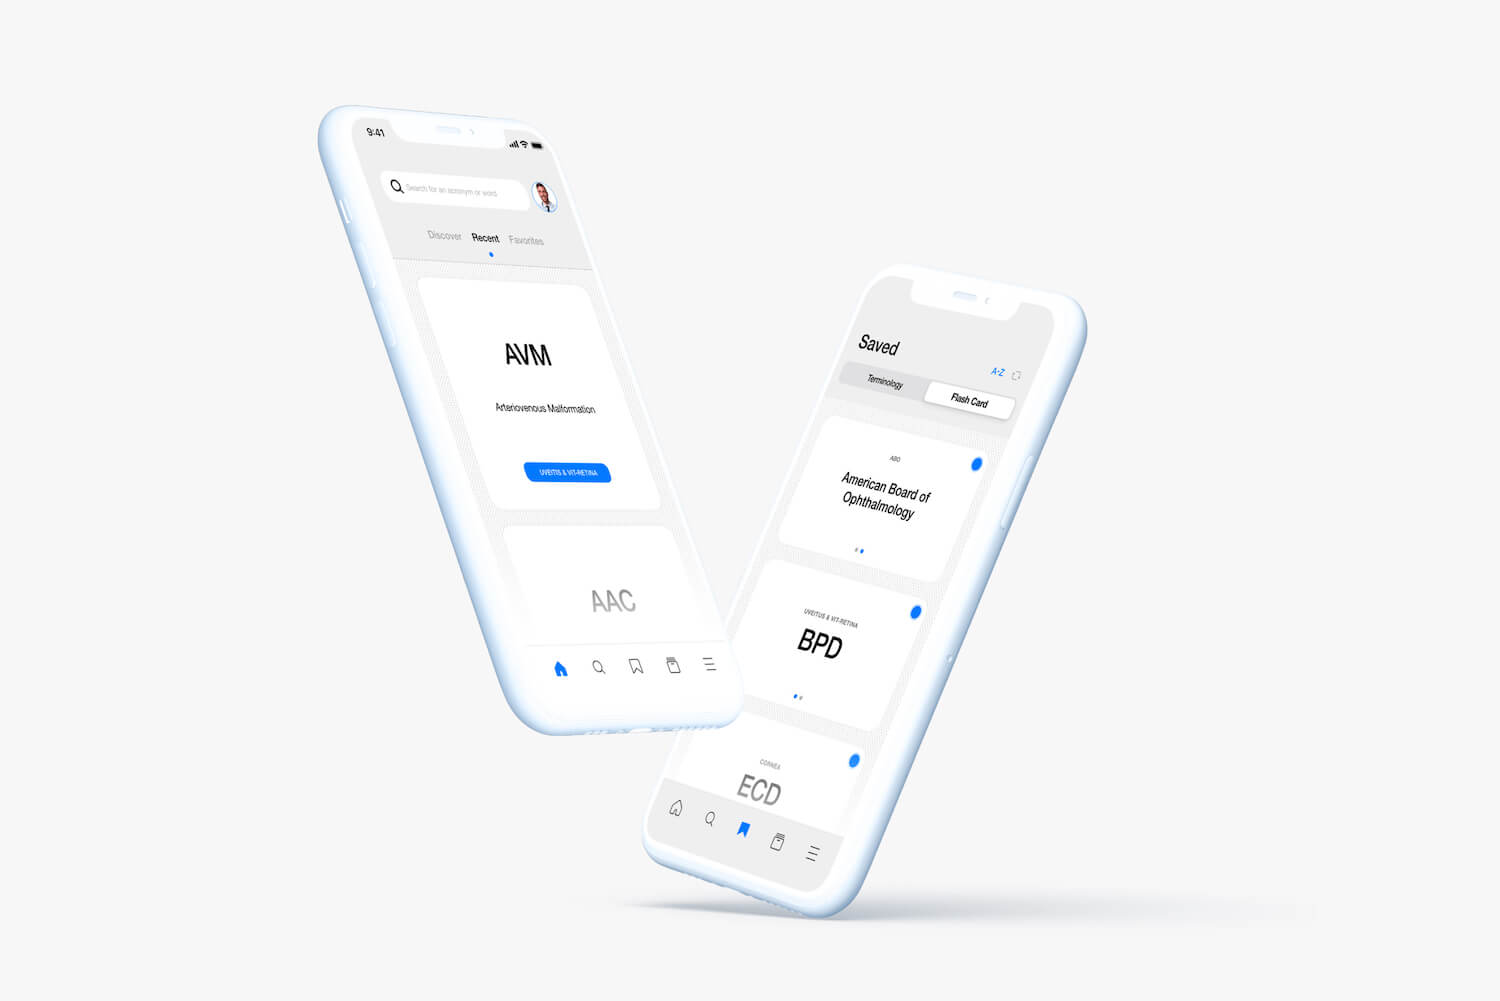 Mockup Image of OE Acronyms App on iPhone X.